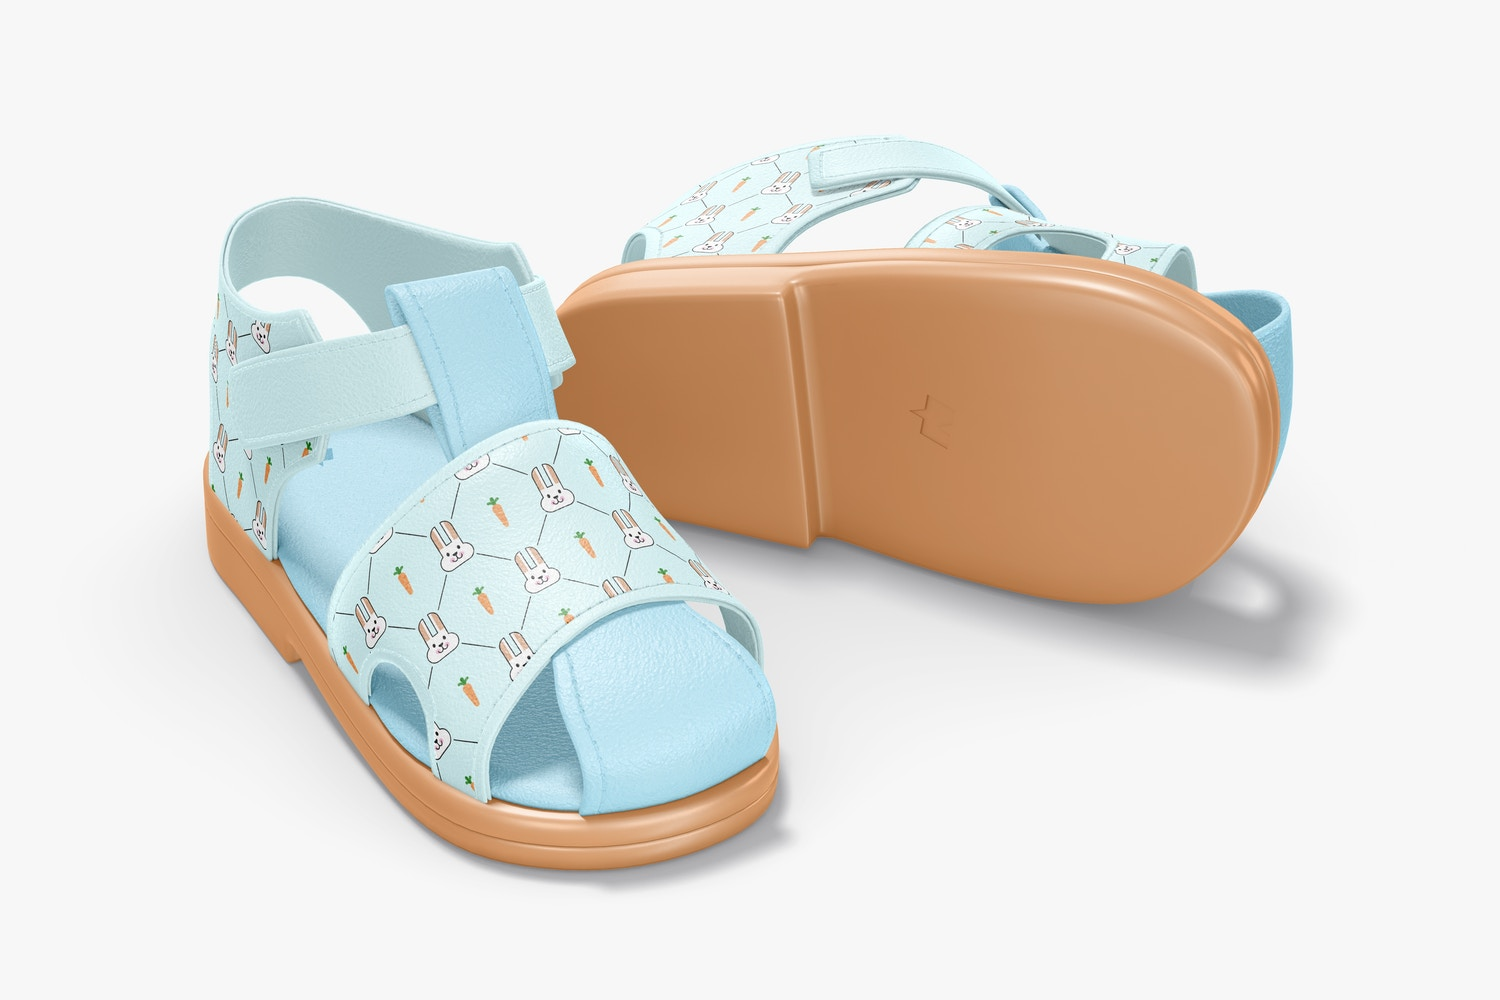 Baby Shoes Mockup, Front and Back View